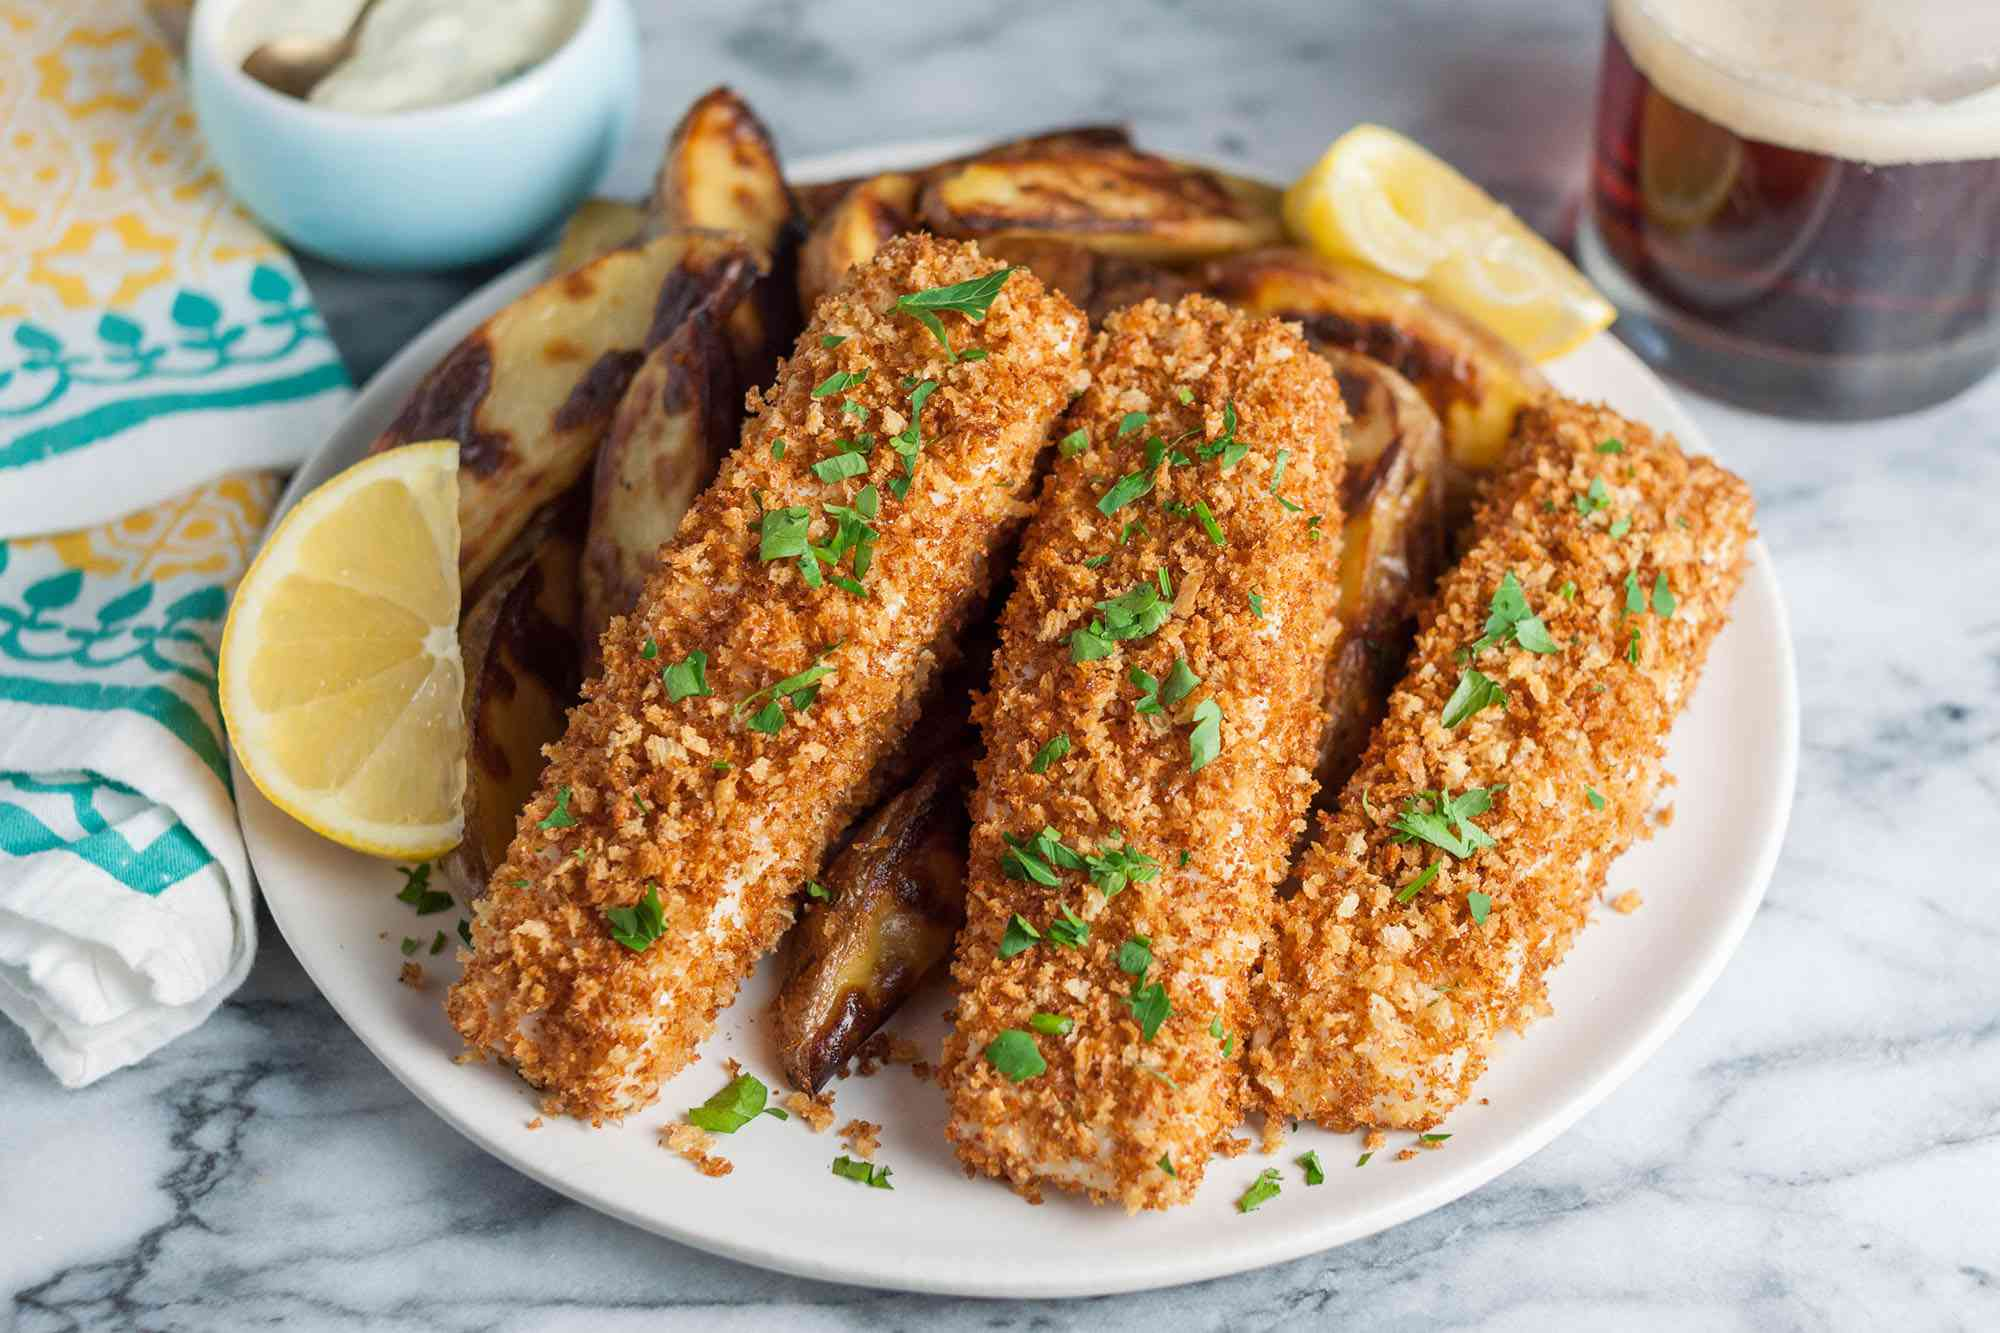 Breaded Fish and Chips on plate with lemon wedge